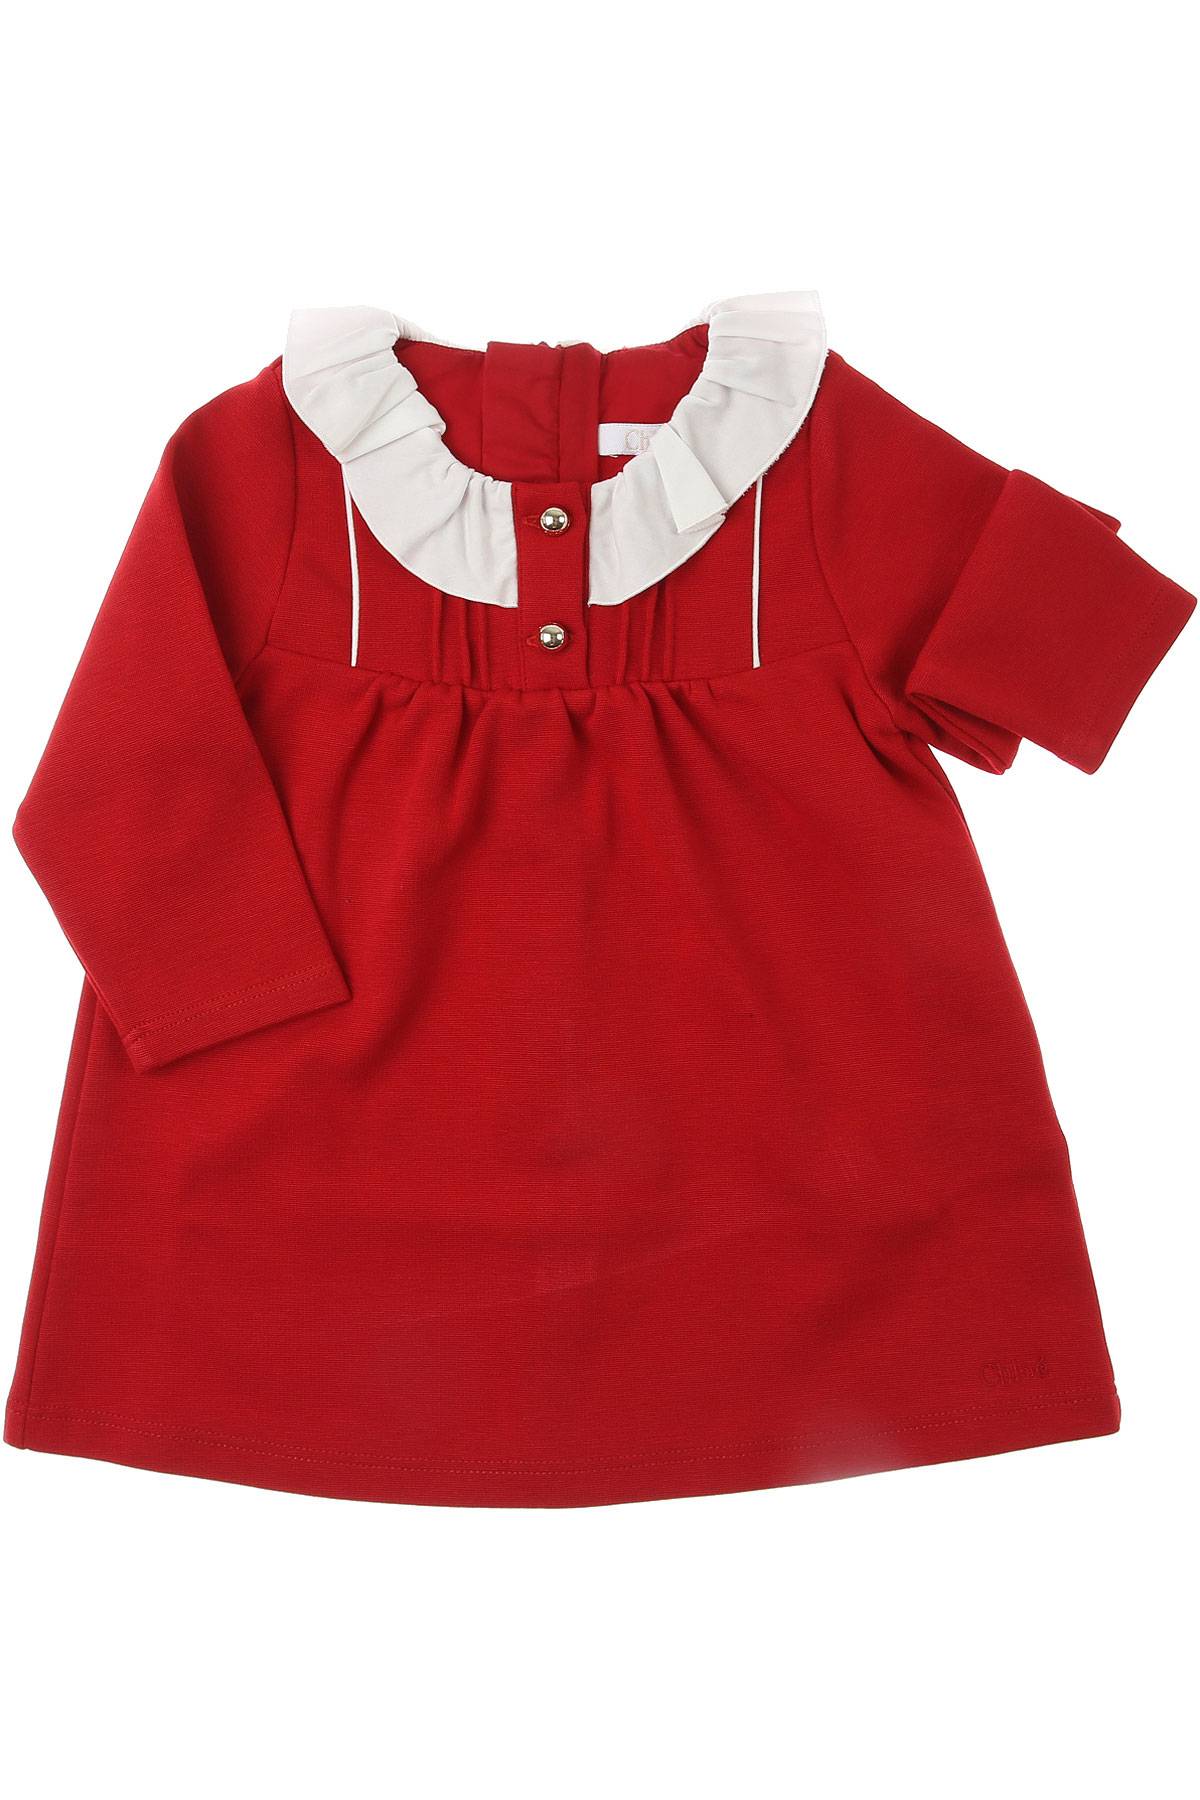 Chloe Baby Dress for Girls On Sale, Red, Cotton, 2019, 12M 6M 9M